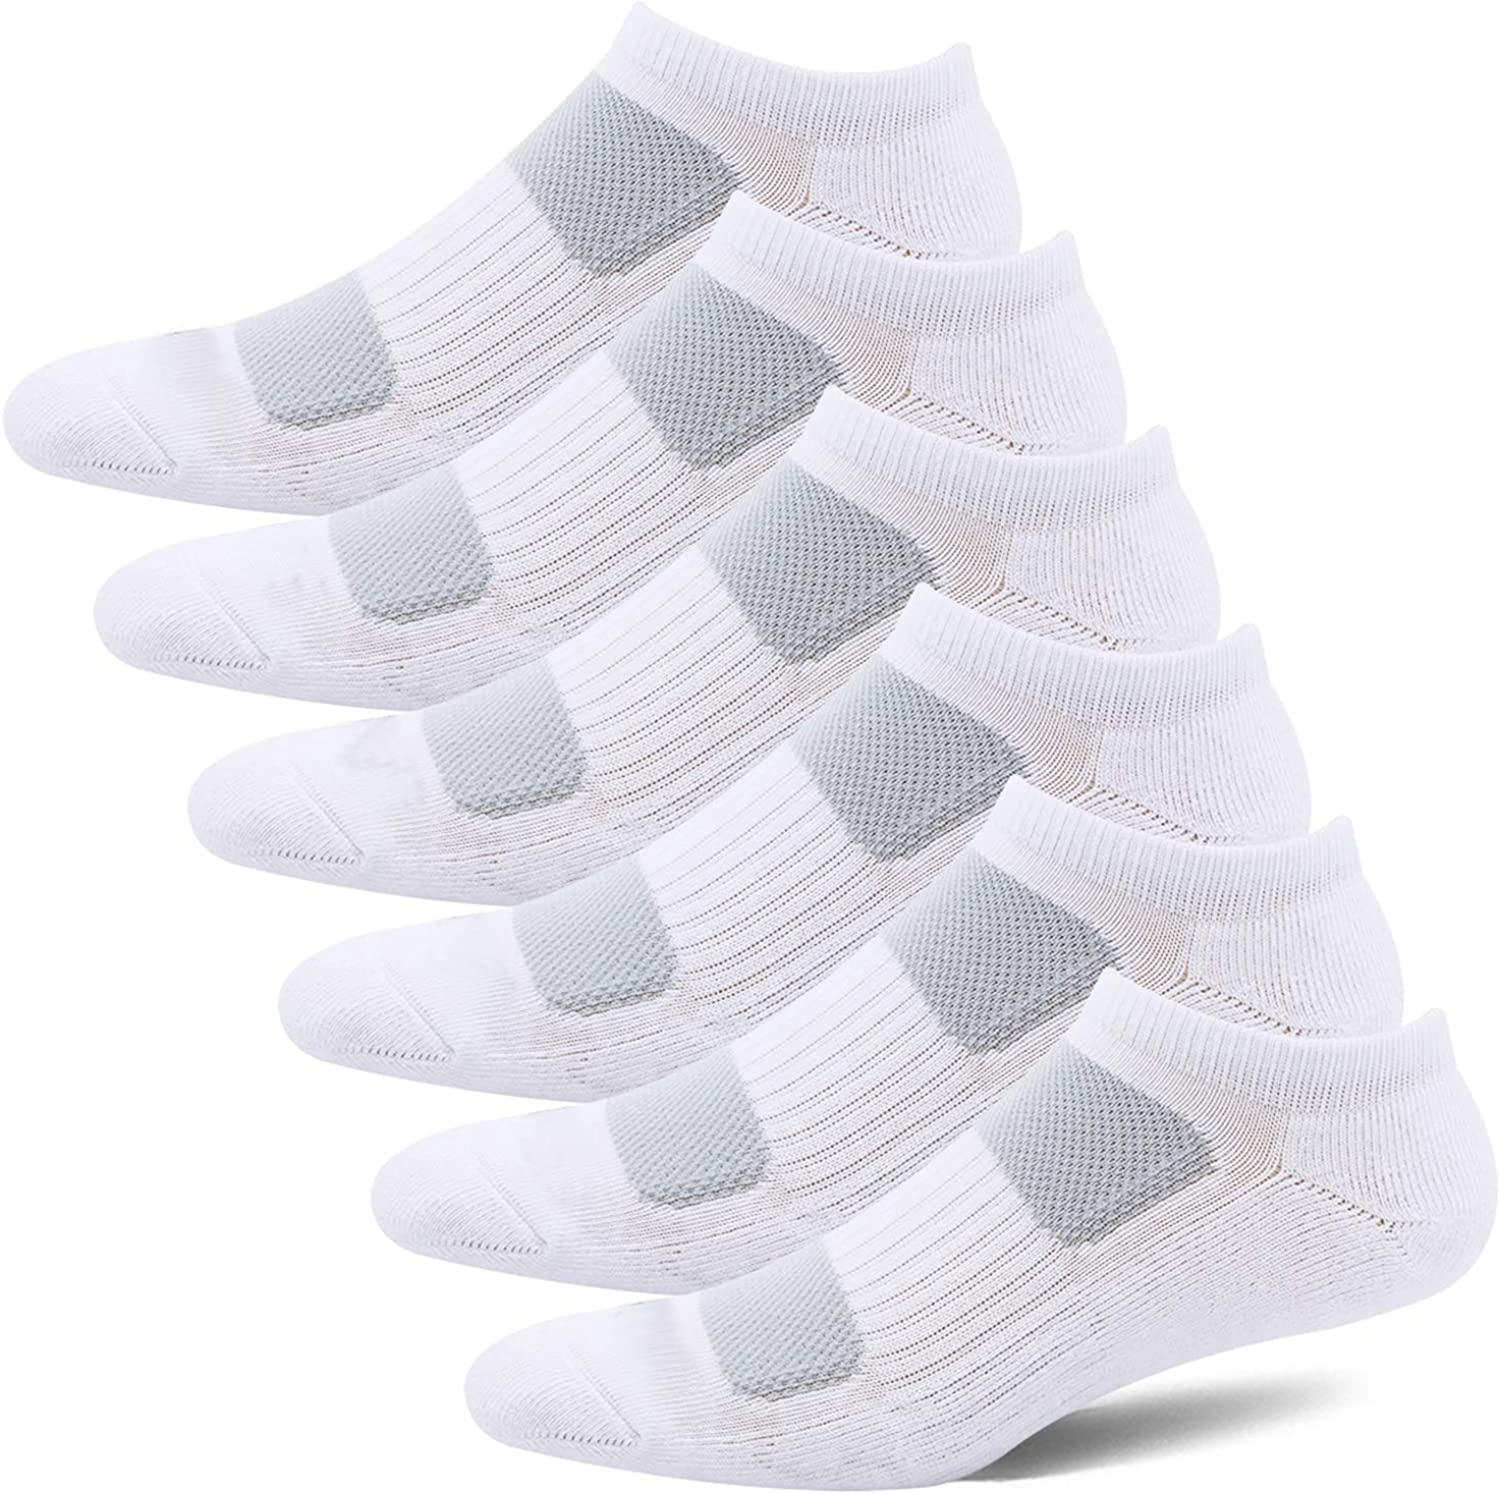 BERING Women's Low Ankle Comfort Athletic Socks (6 Pair Pack)